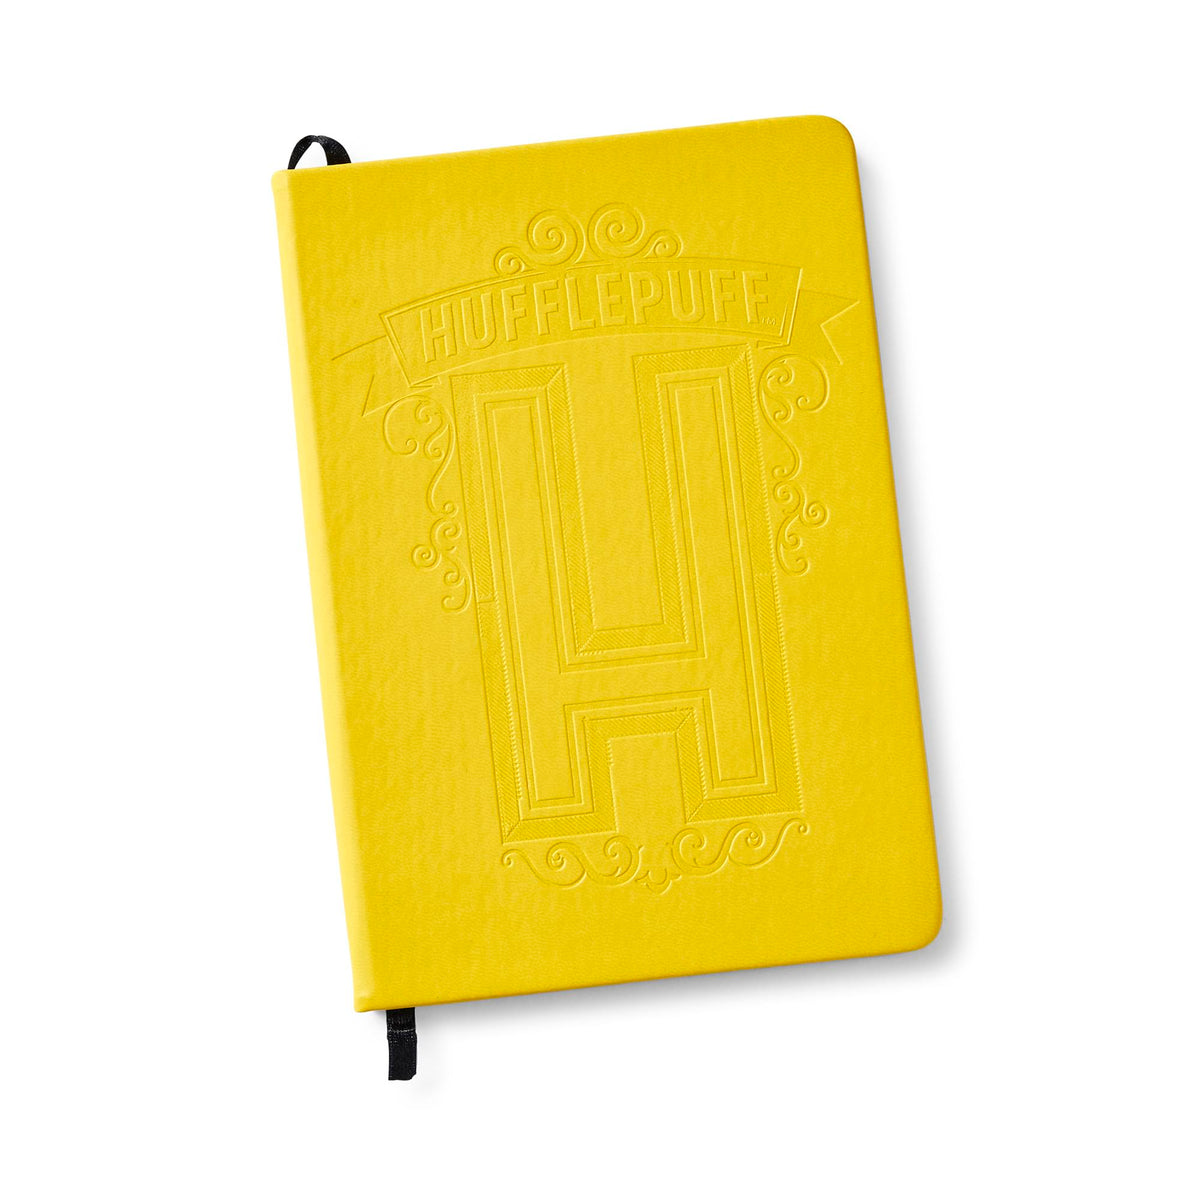 "Harry Potter Hogwarts House Hufflepuff Debossed-Cover Journal - 7.25""x 5"""